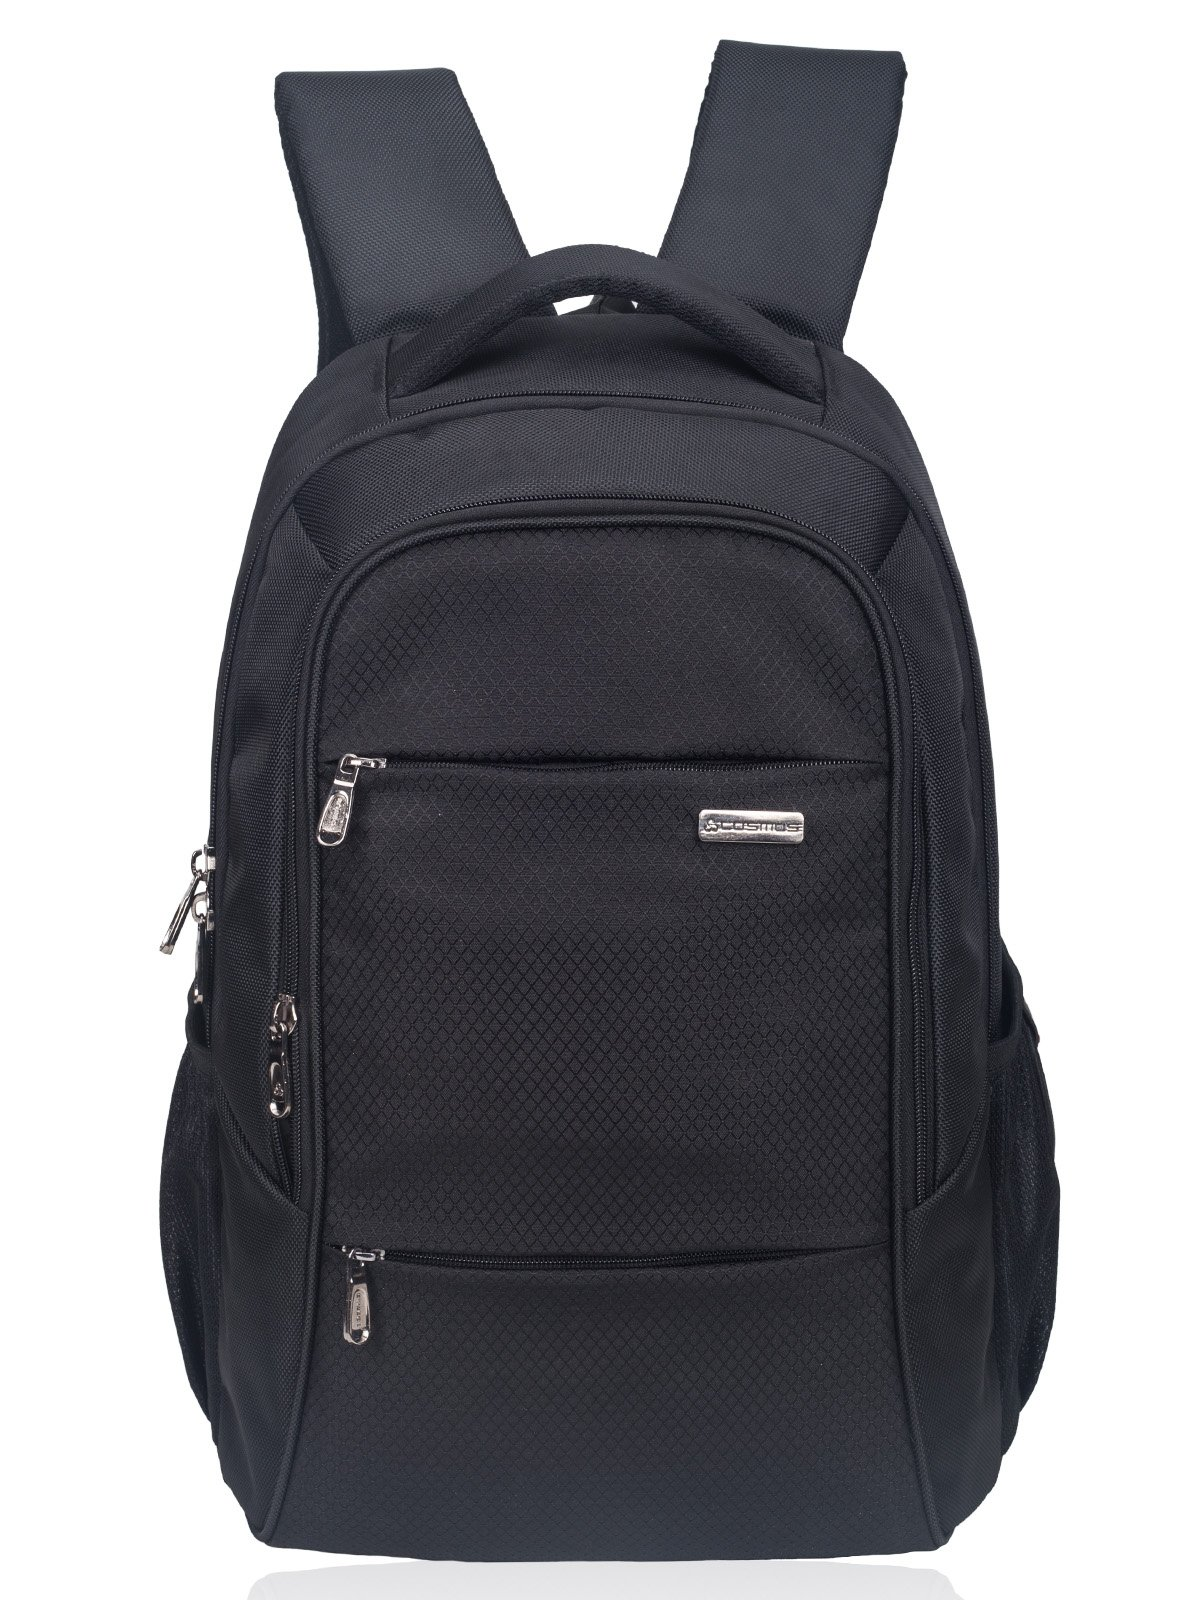 Cosmus 40051011035 29L Laptop Backpack (Black) product image